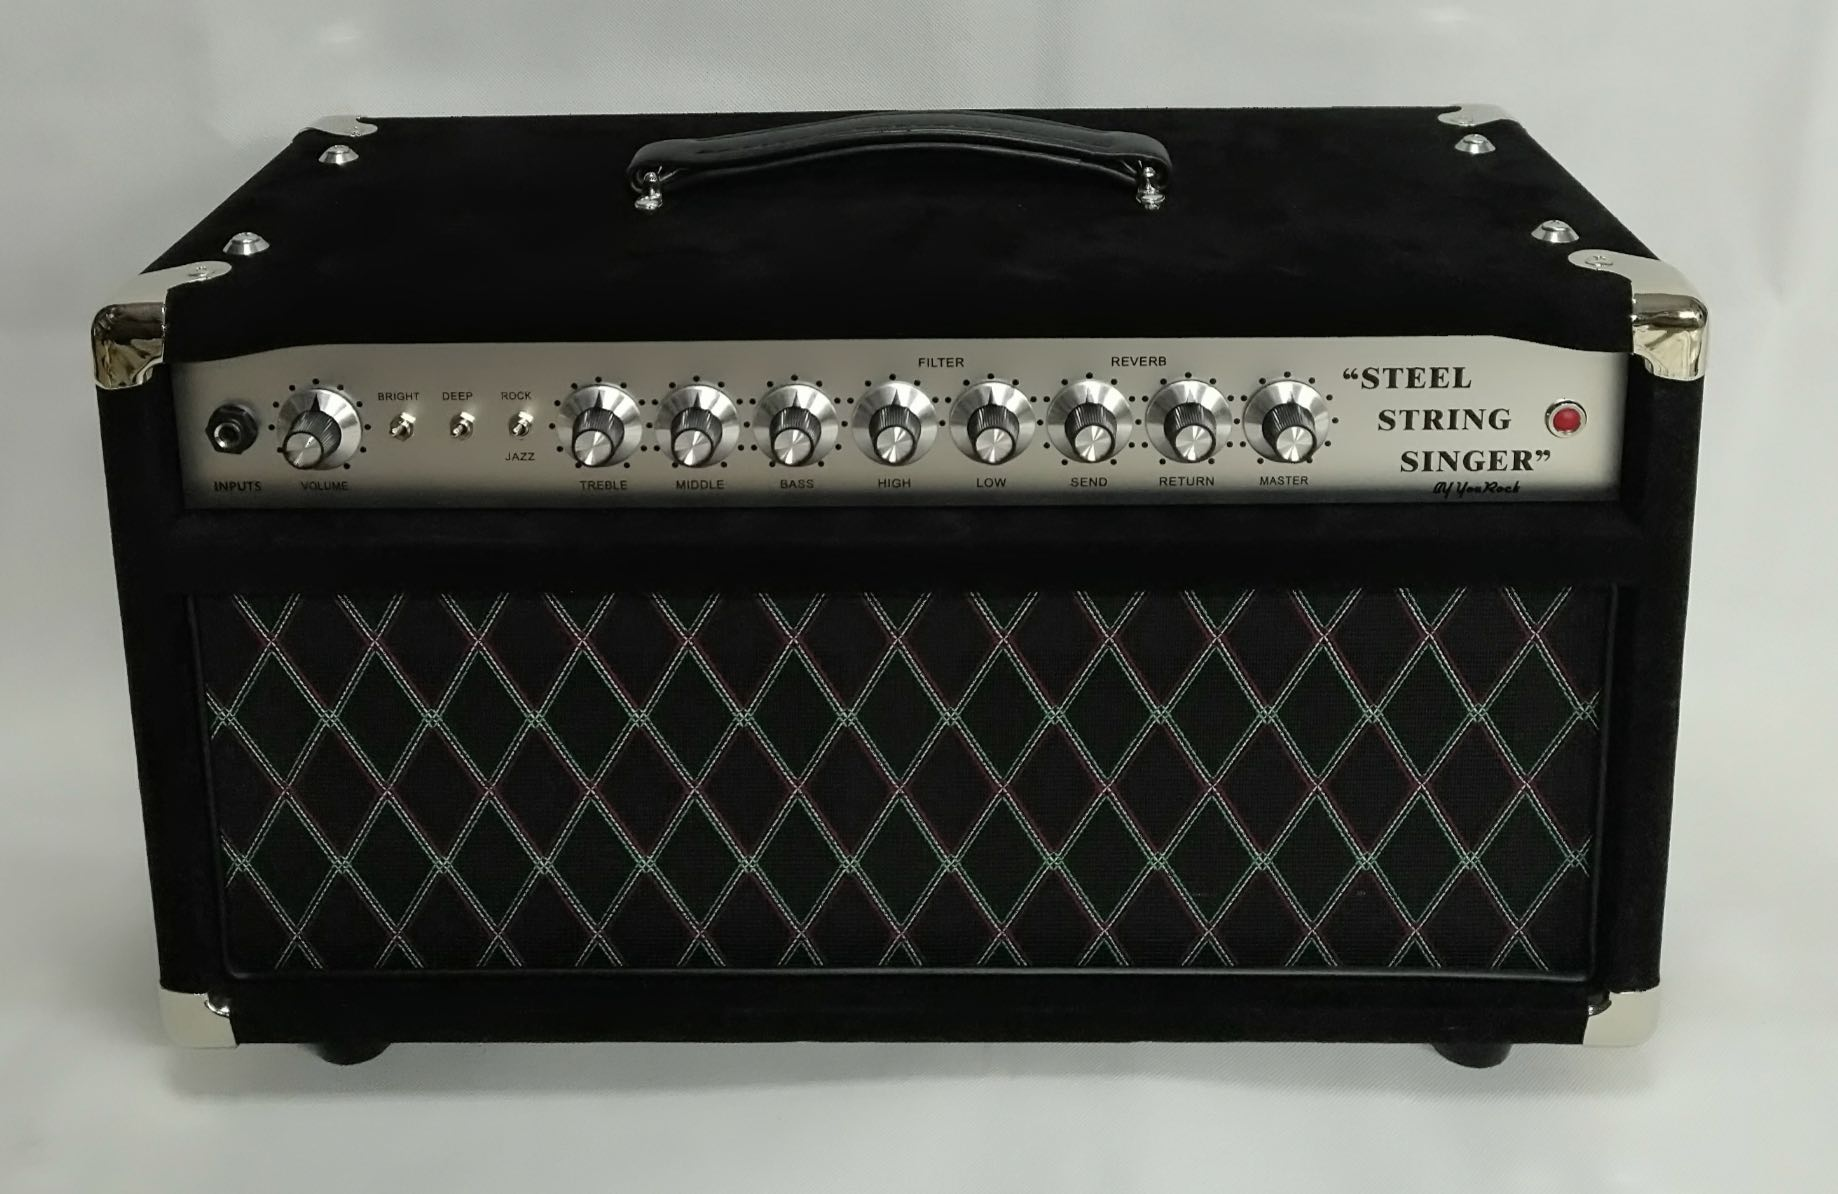 Deluxe Handwired Dumble Steel String Singer SSS Guitar Amplifier 50W